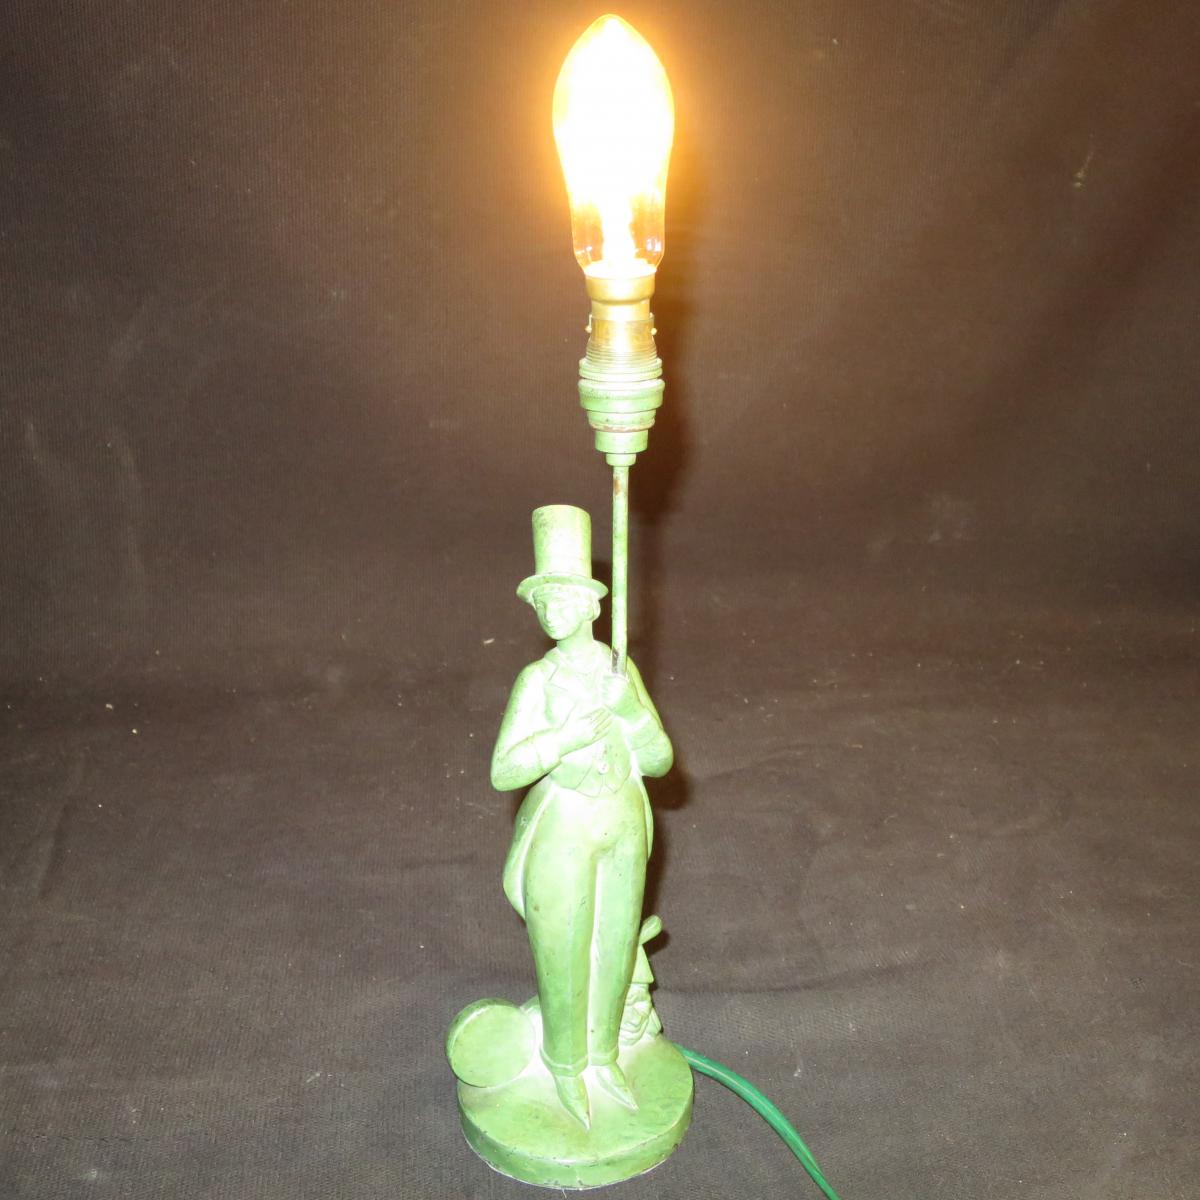 Lamp Sculpture Art Deco Signed Jc Darvel Cirque Comedien In Top Hat Shaped-photo-3